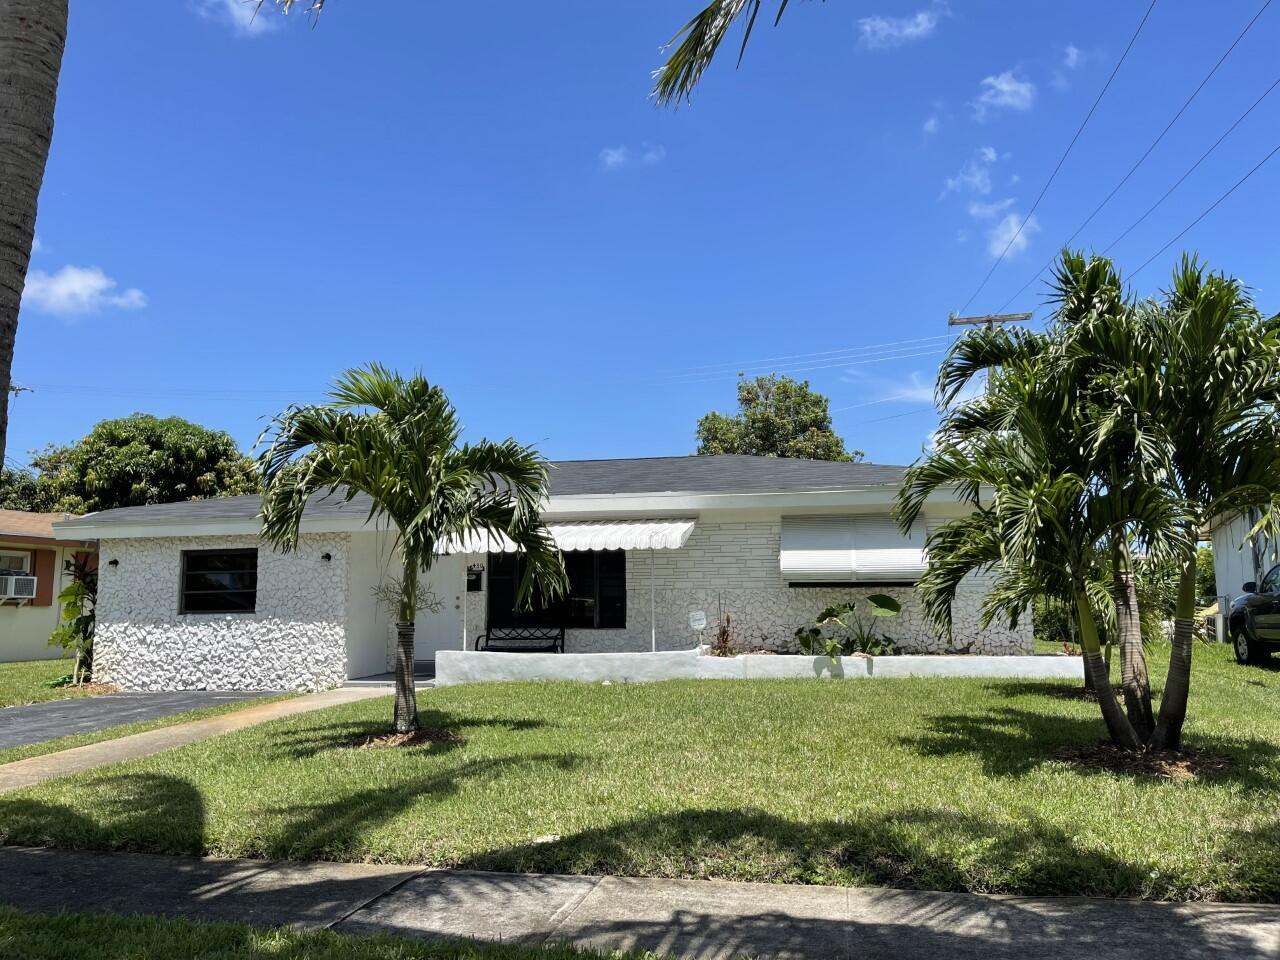 Home for sale in Melrose Manors Fort Lauderdale Florida